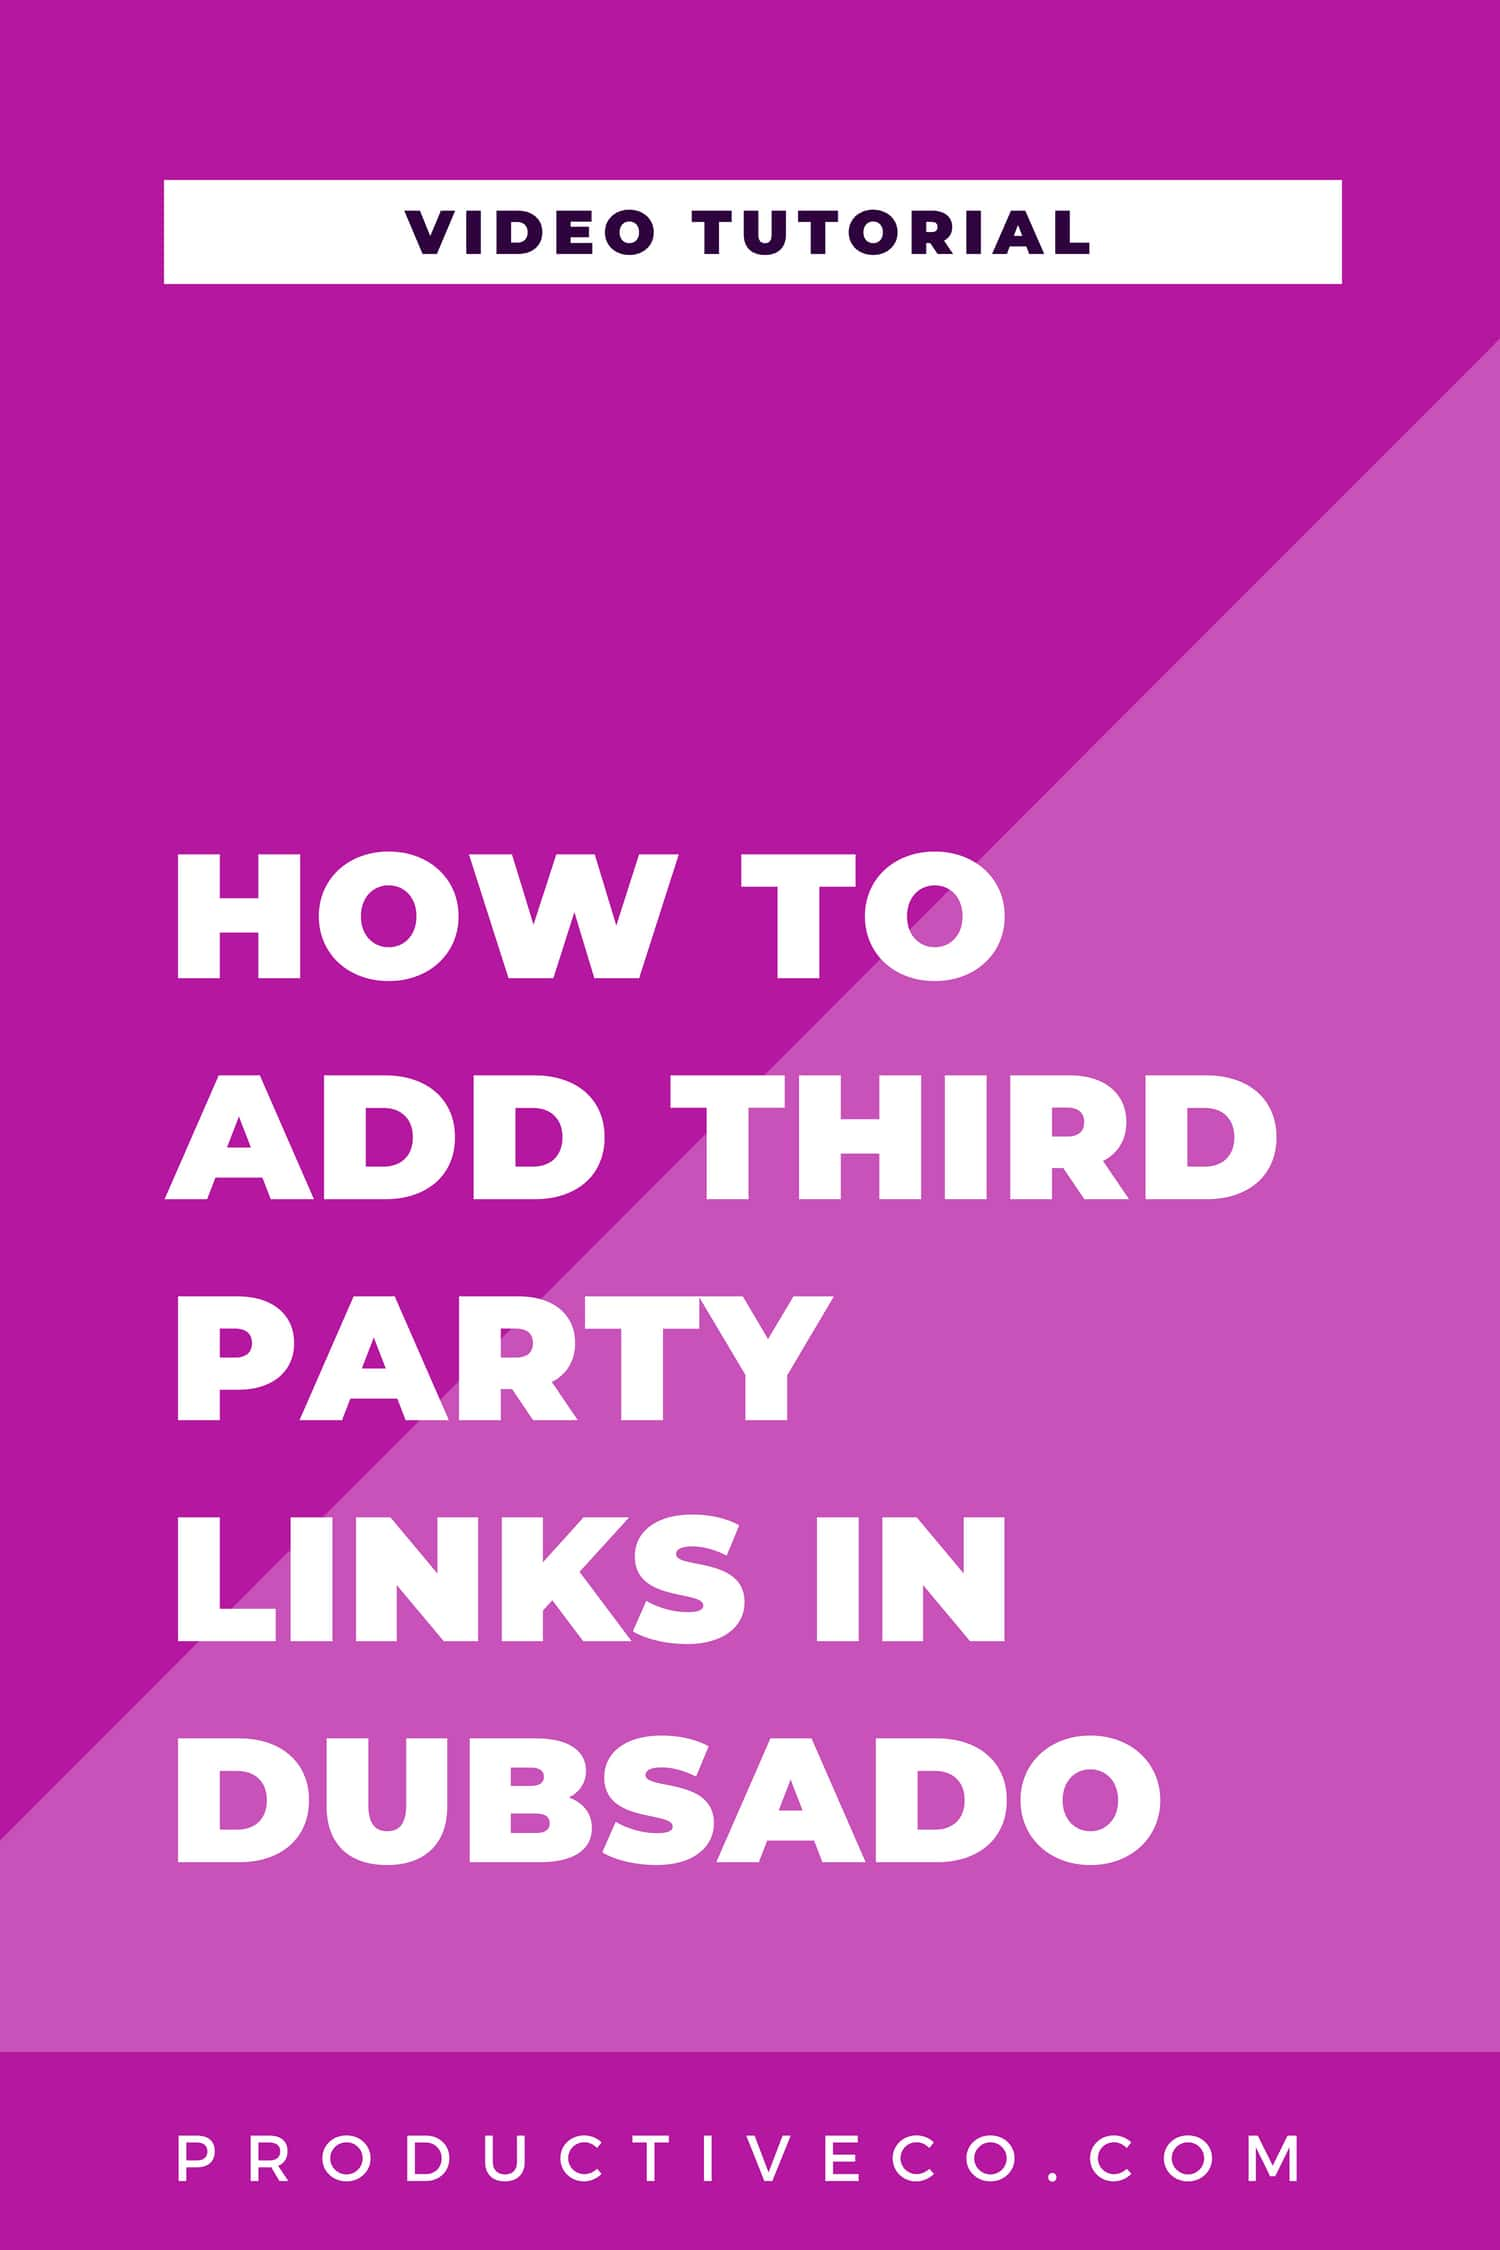 Add third party links in Dubsado to connect your account to other software, folders, etc. Your clients will be able to access these links from their client portals! Find out how.